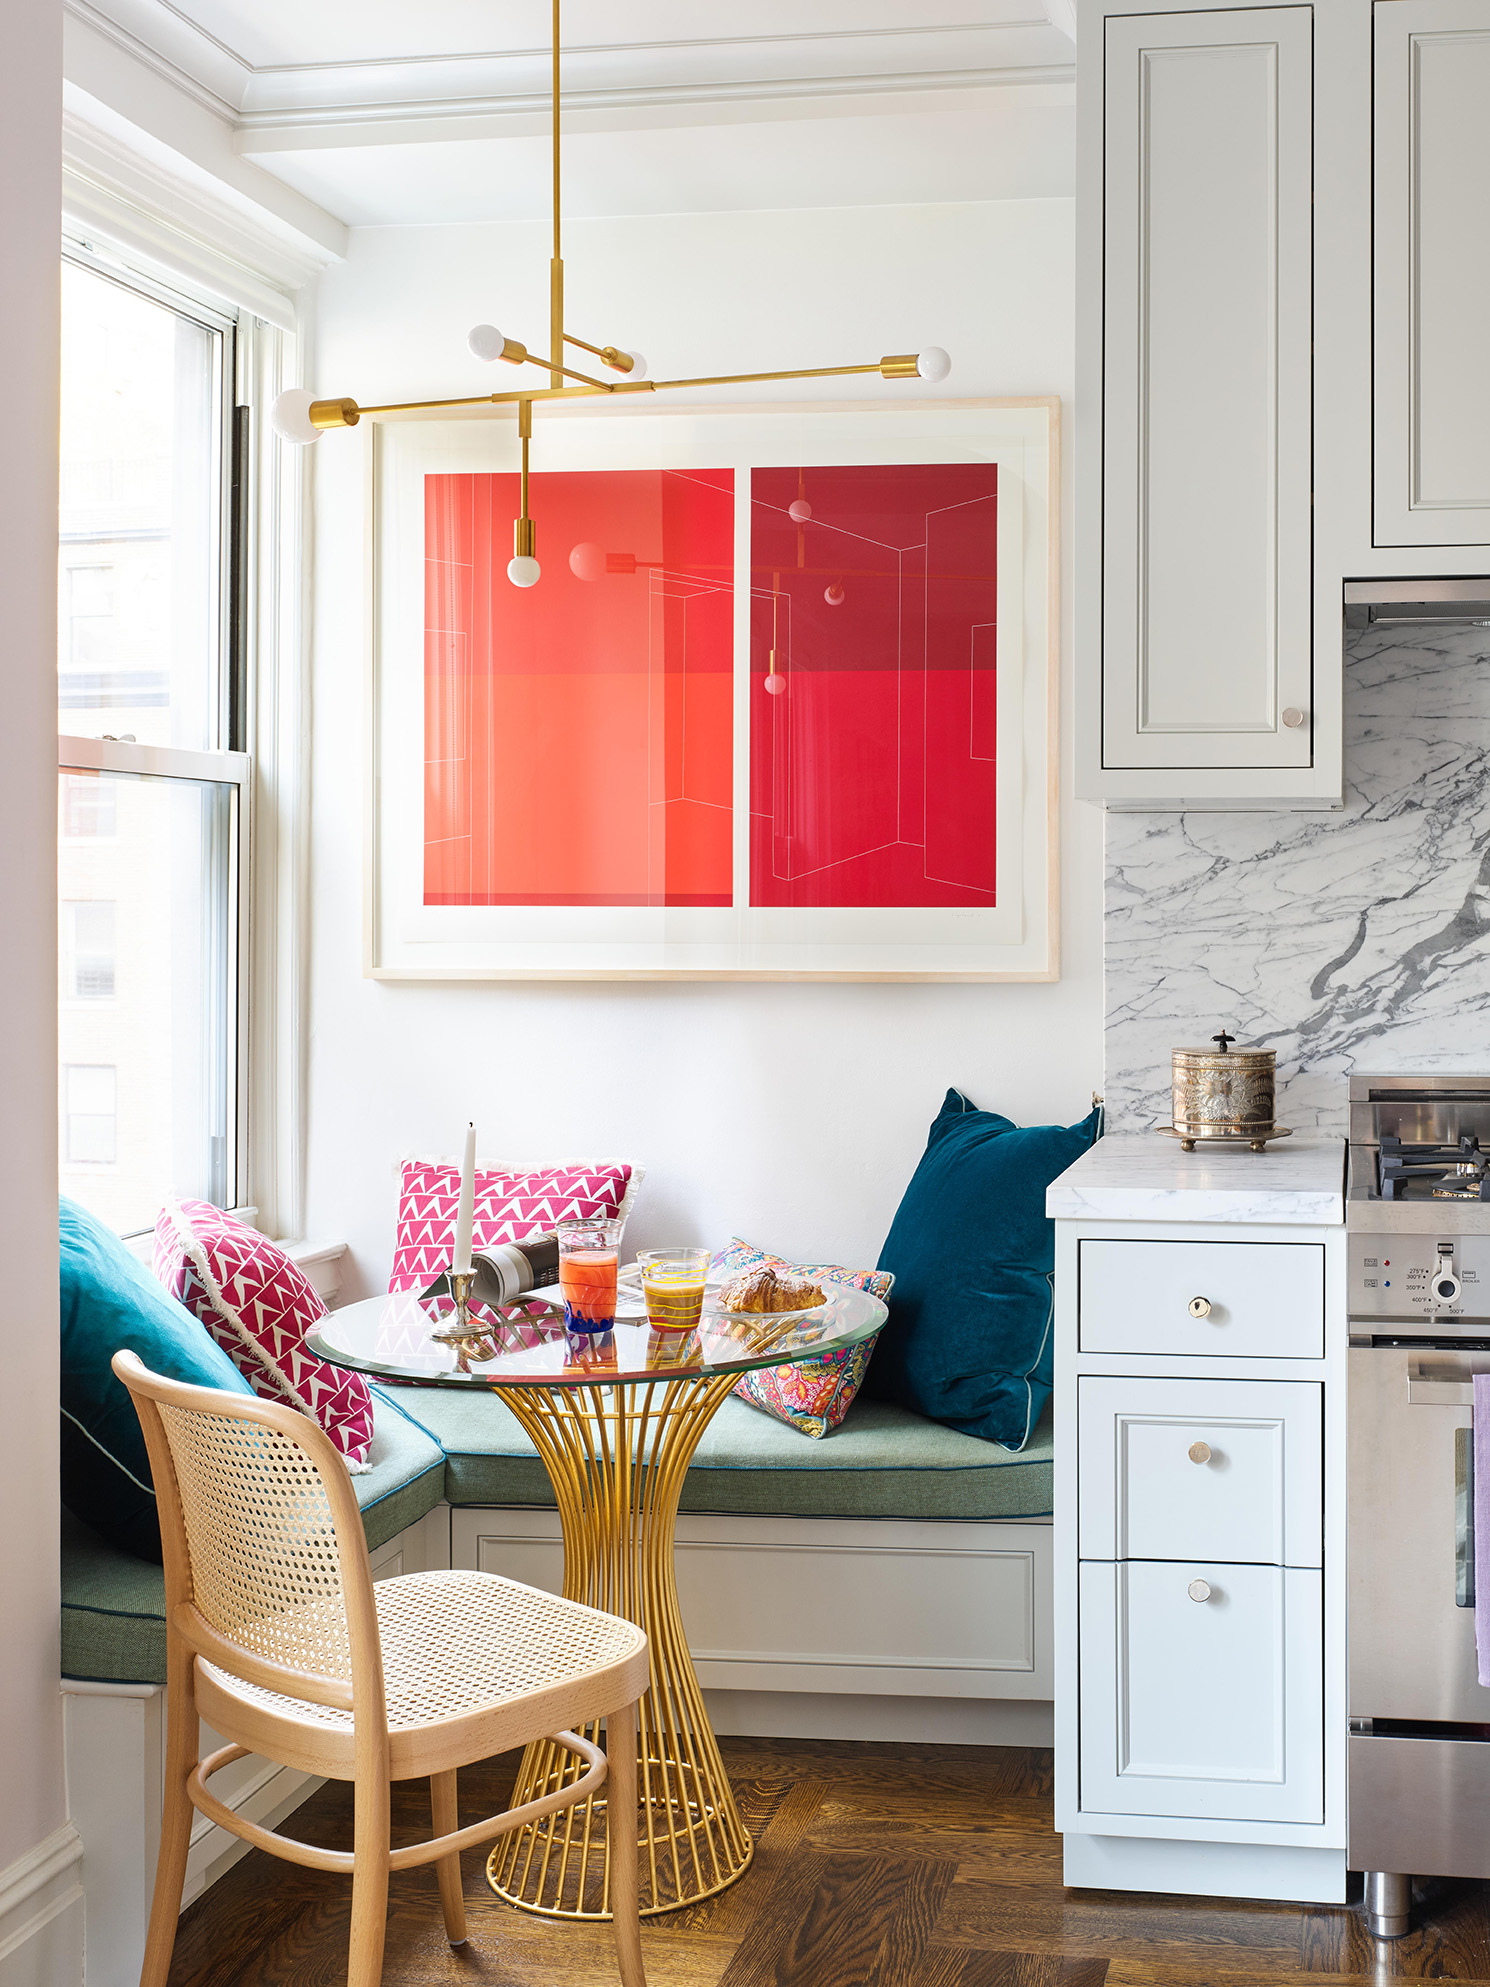 kitchen banquette with bold artwork in reds